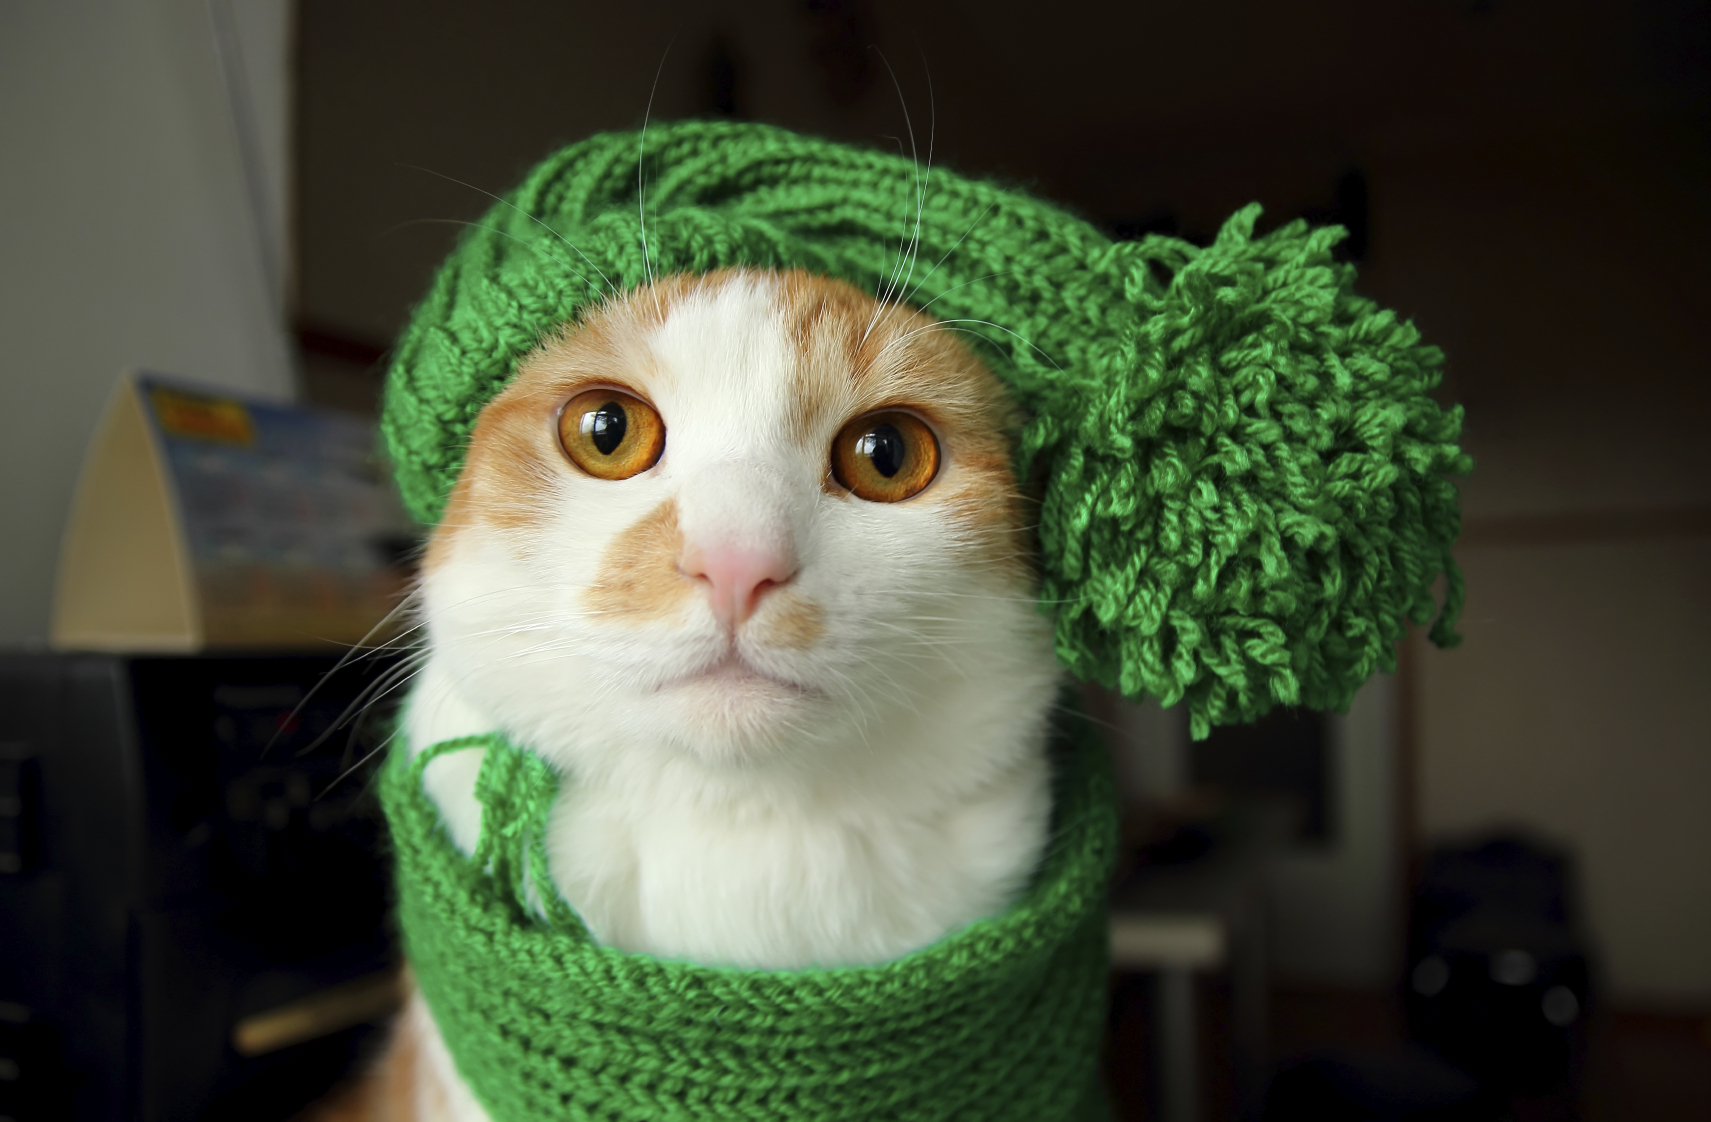 Puss in green hat with pompons